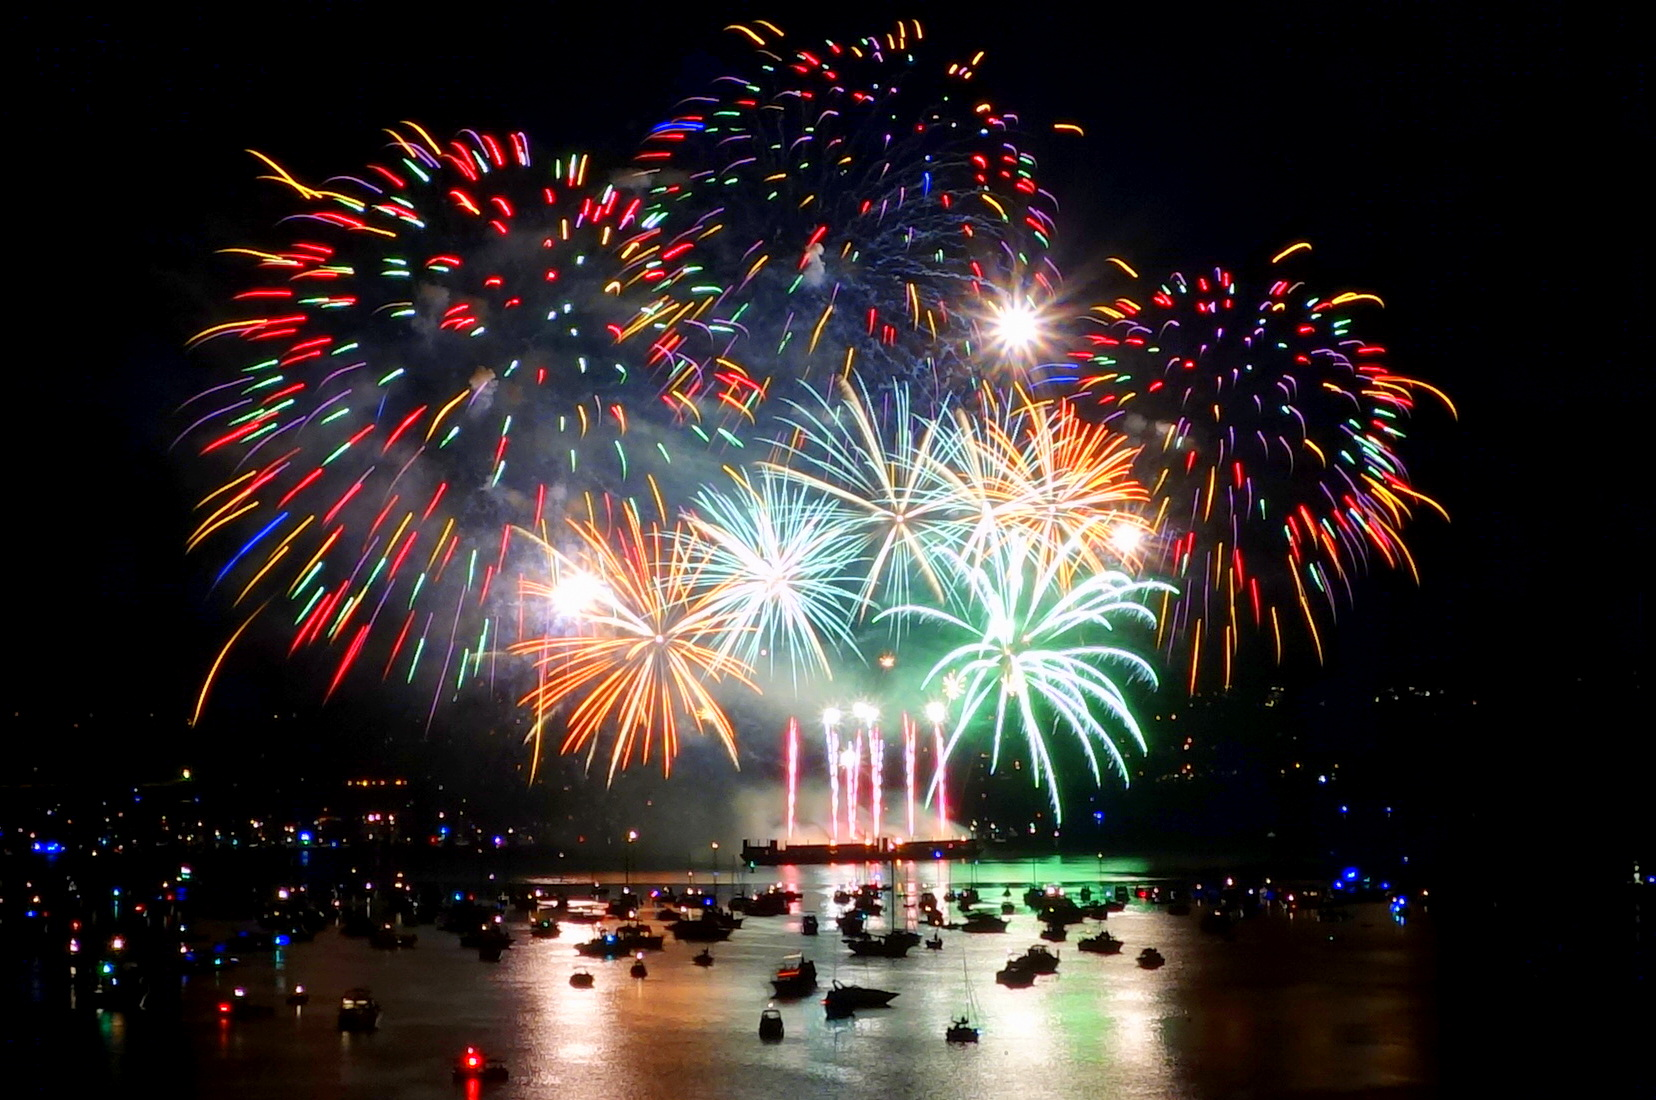 Canada's_fireworks_at_the_2013_Celebration_of_Light_in_Vancouver,_BC